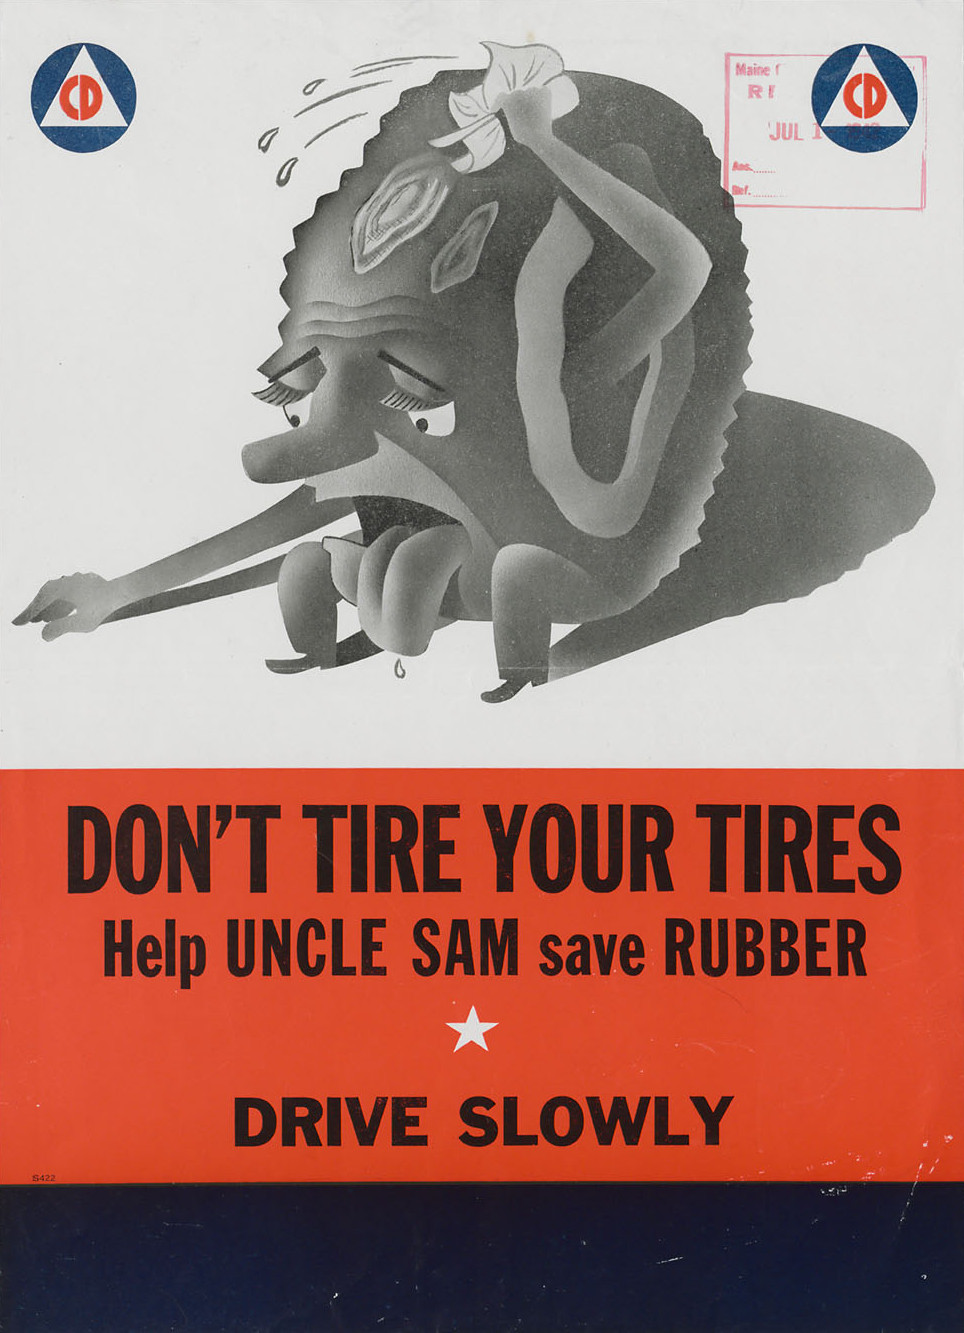 1941-1945-Dont-tire-your-tires-Help-Uncle-Sam-save-rubber-Drive-Slowly